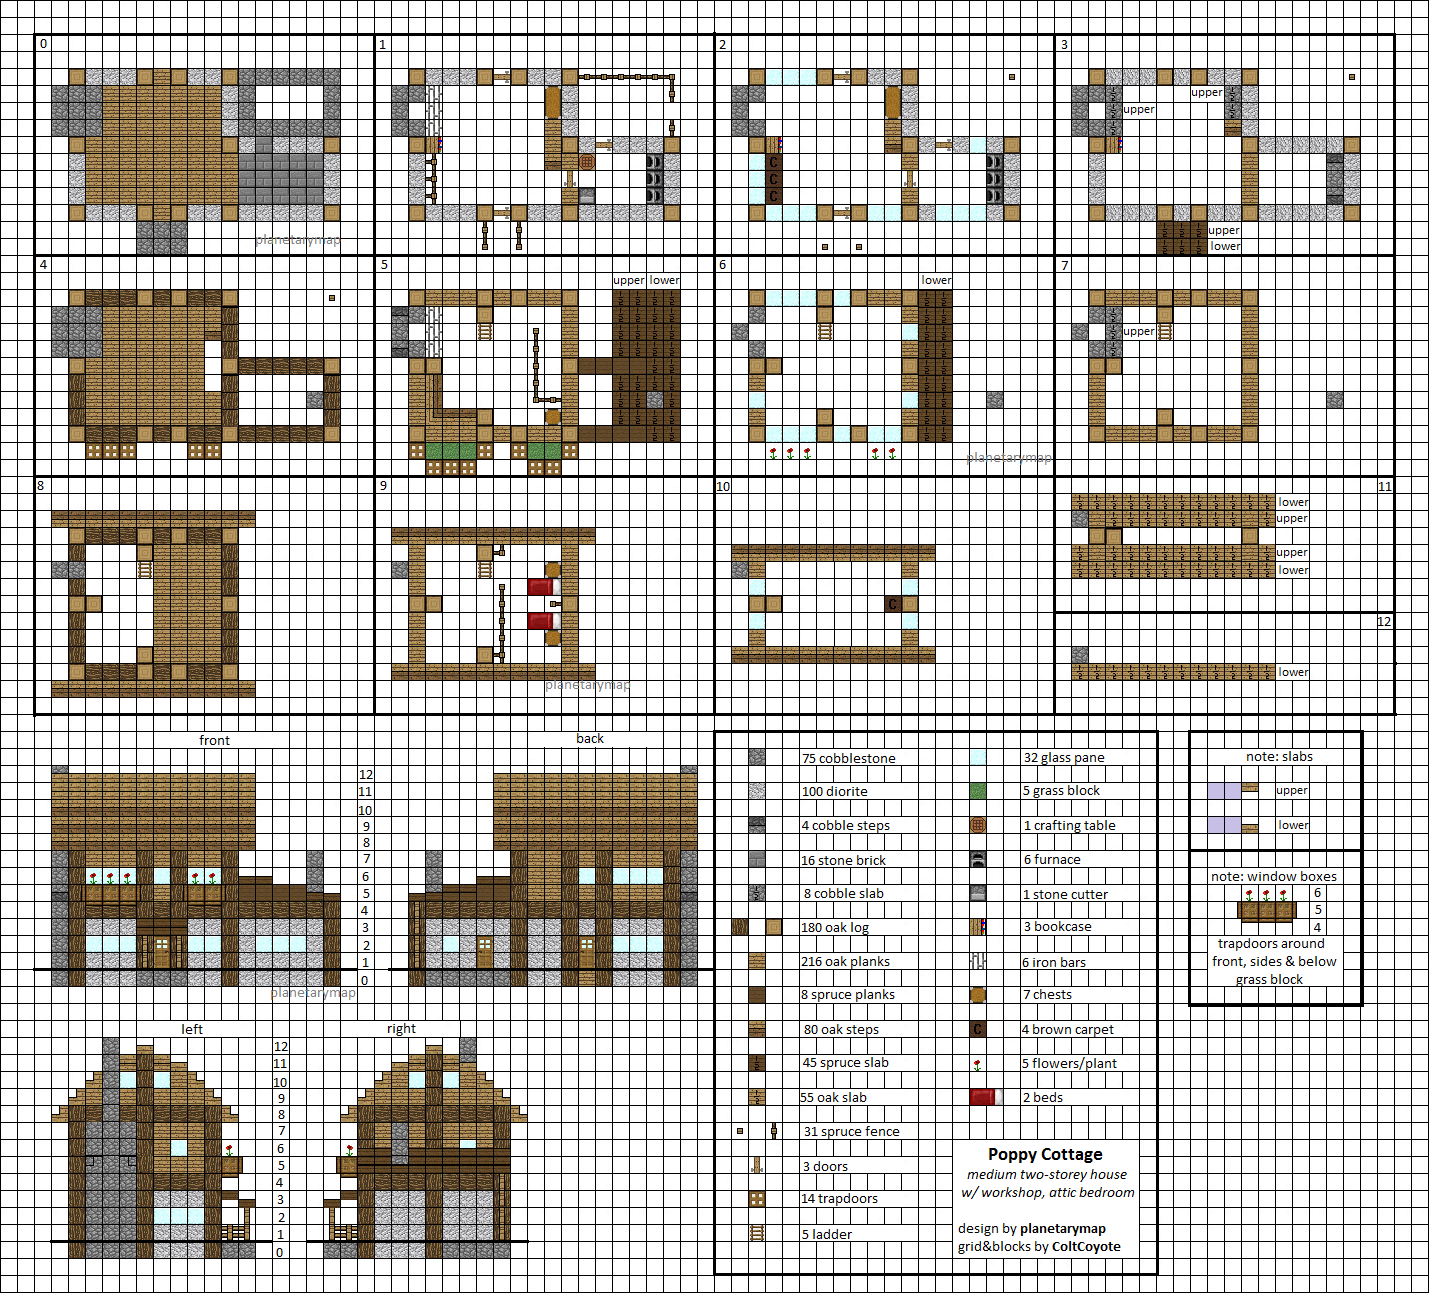 Poppy cottage medium minecraft house blueprints by on deviantart - Home design blueprints ...